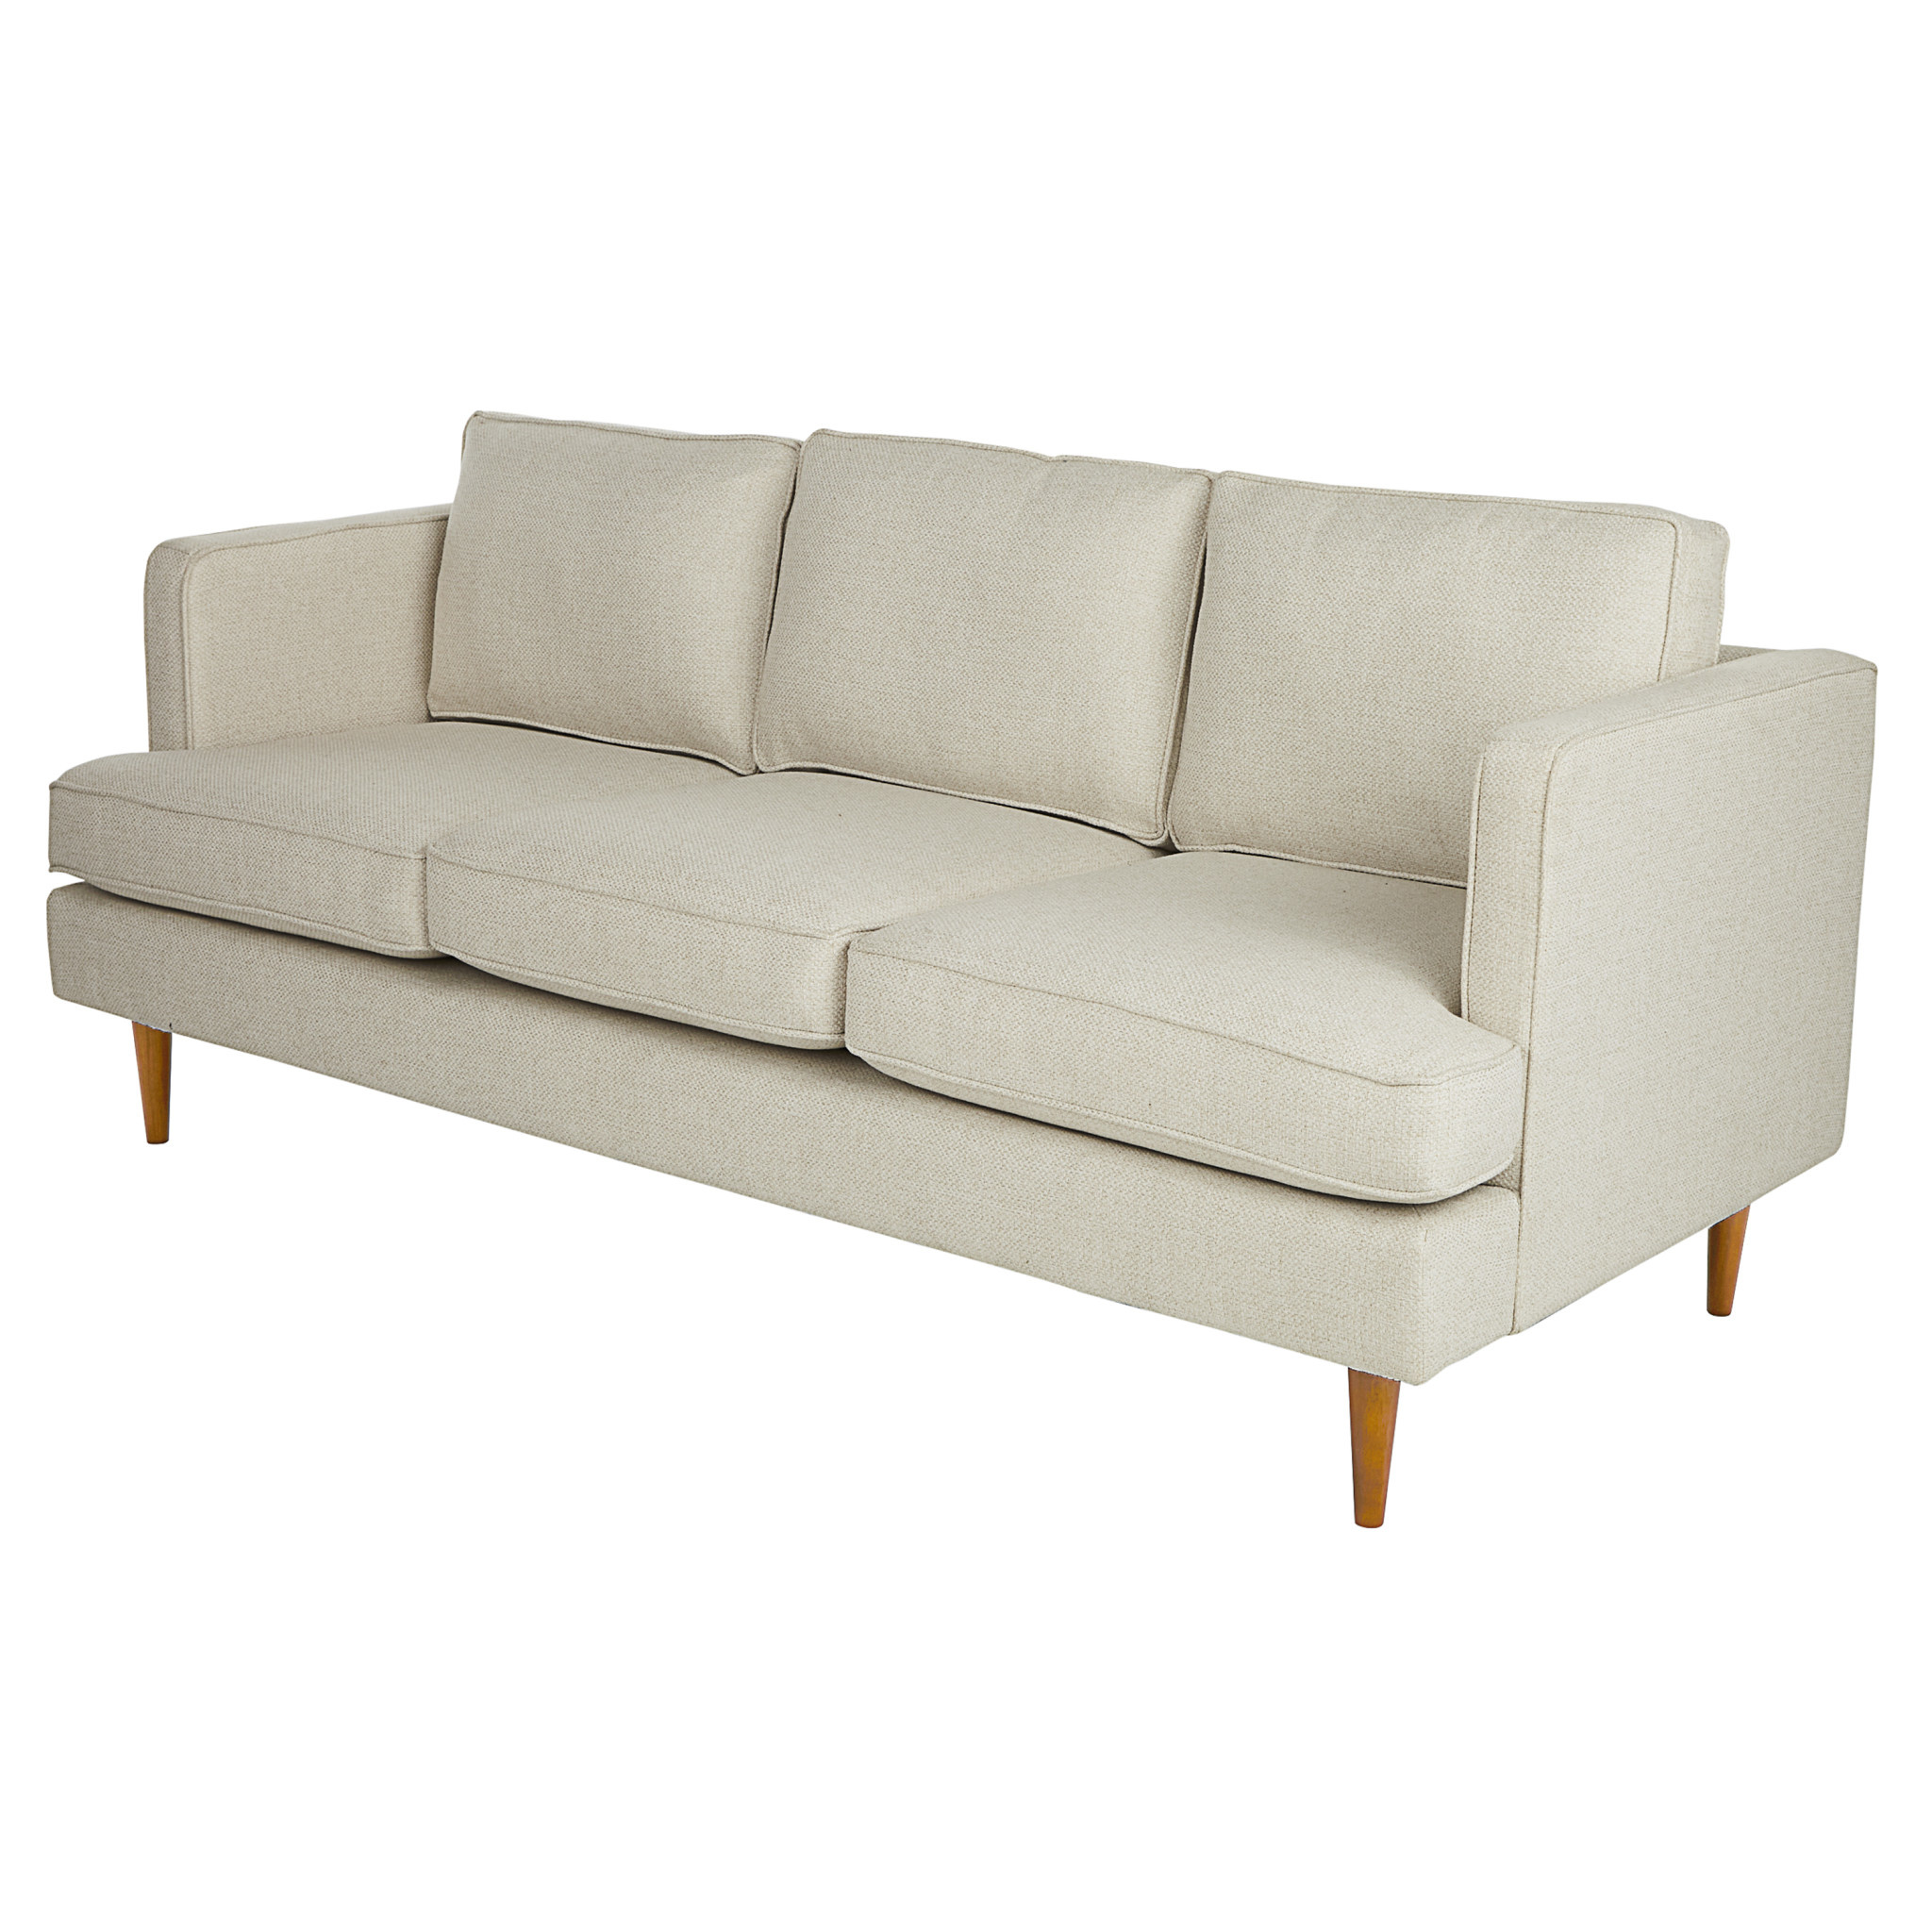 HOWSER SOFA - SALT